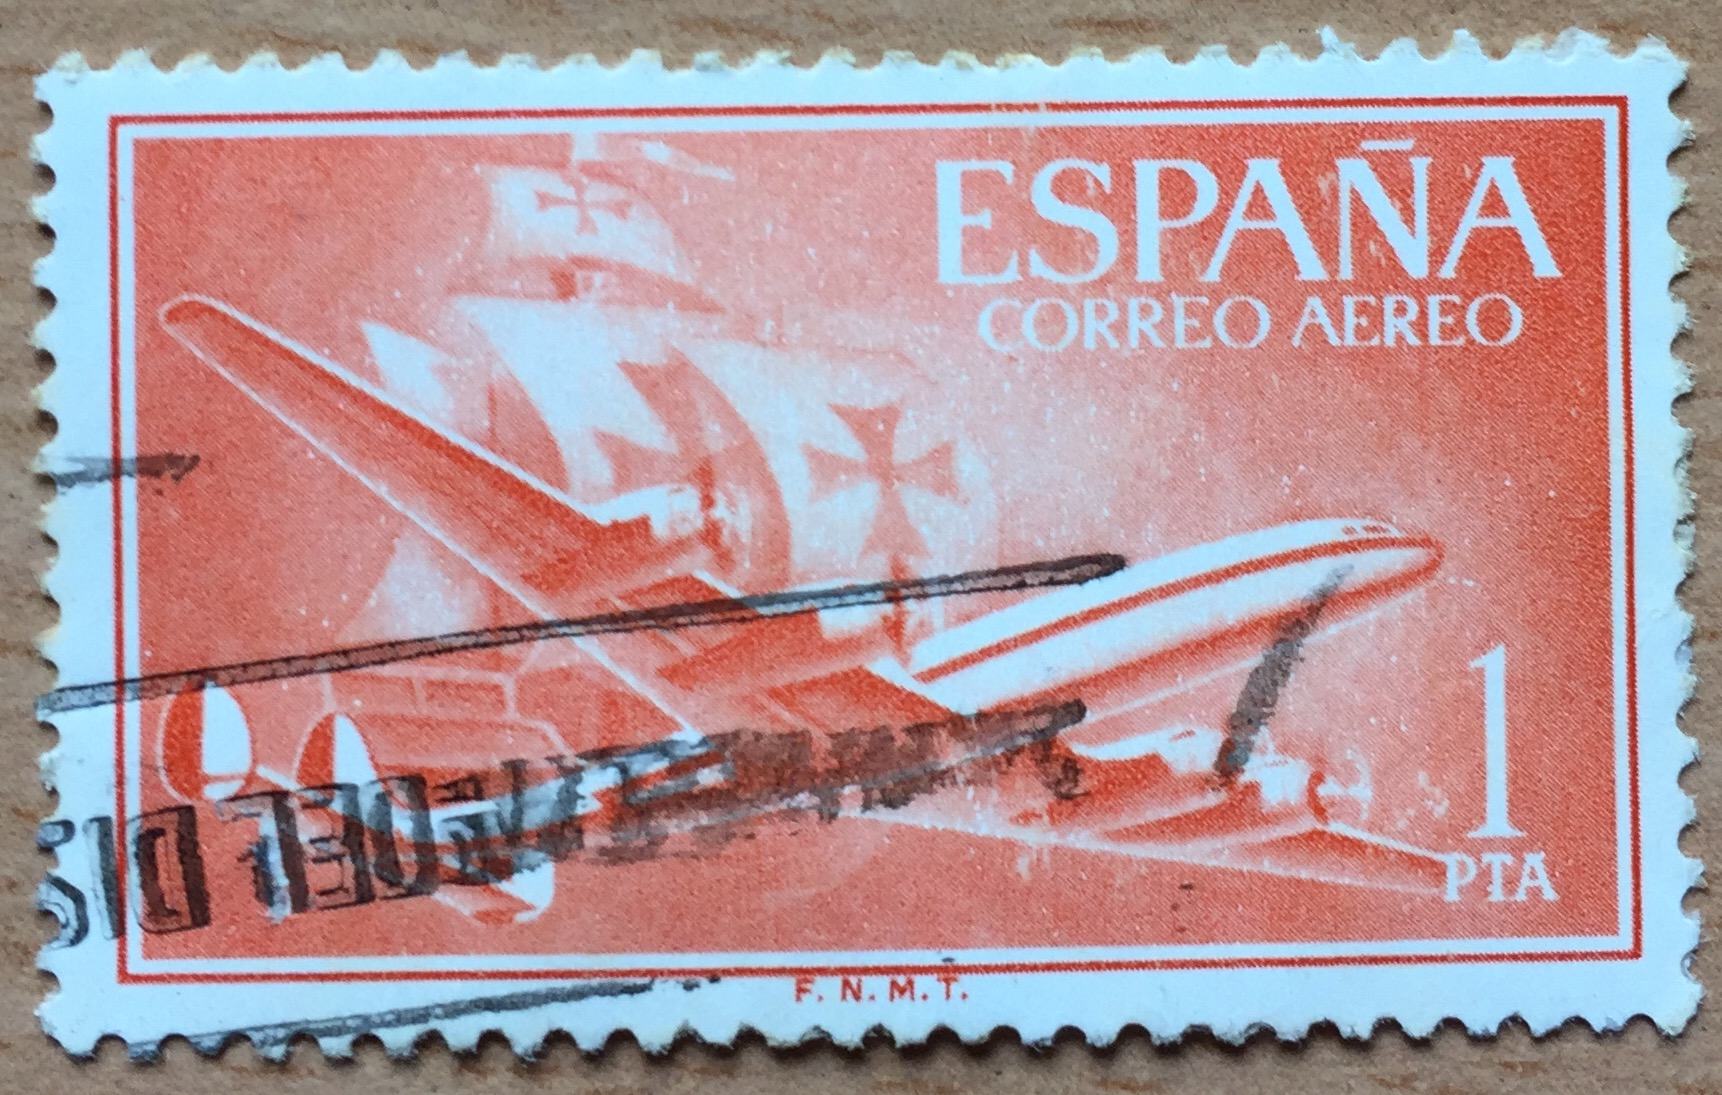 """A Lockheed Super Constallation illustrated this Spanish """"Air Mail"""" stamp series of 1955.Not explicit in the stamp, but most likely the designers took inspiration from Iberia's Super-Connies, that were used in Transatlantic routes,  often to Latin America . Notice also the reference to Columbus' ship. Spain's role in the """"discovery"""" and conquest of America was a regular theme in Spanish postal stamps for decades."""